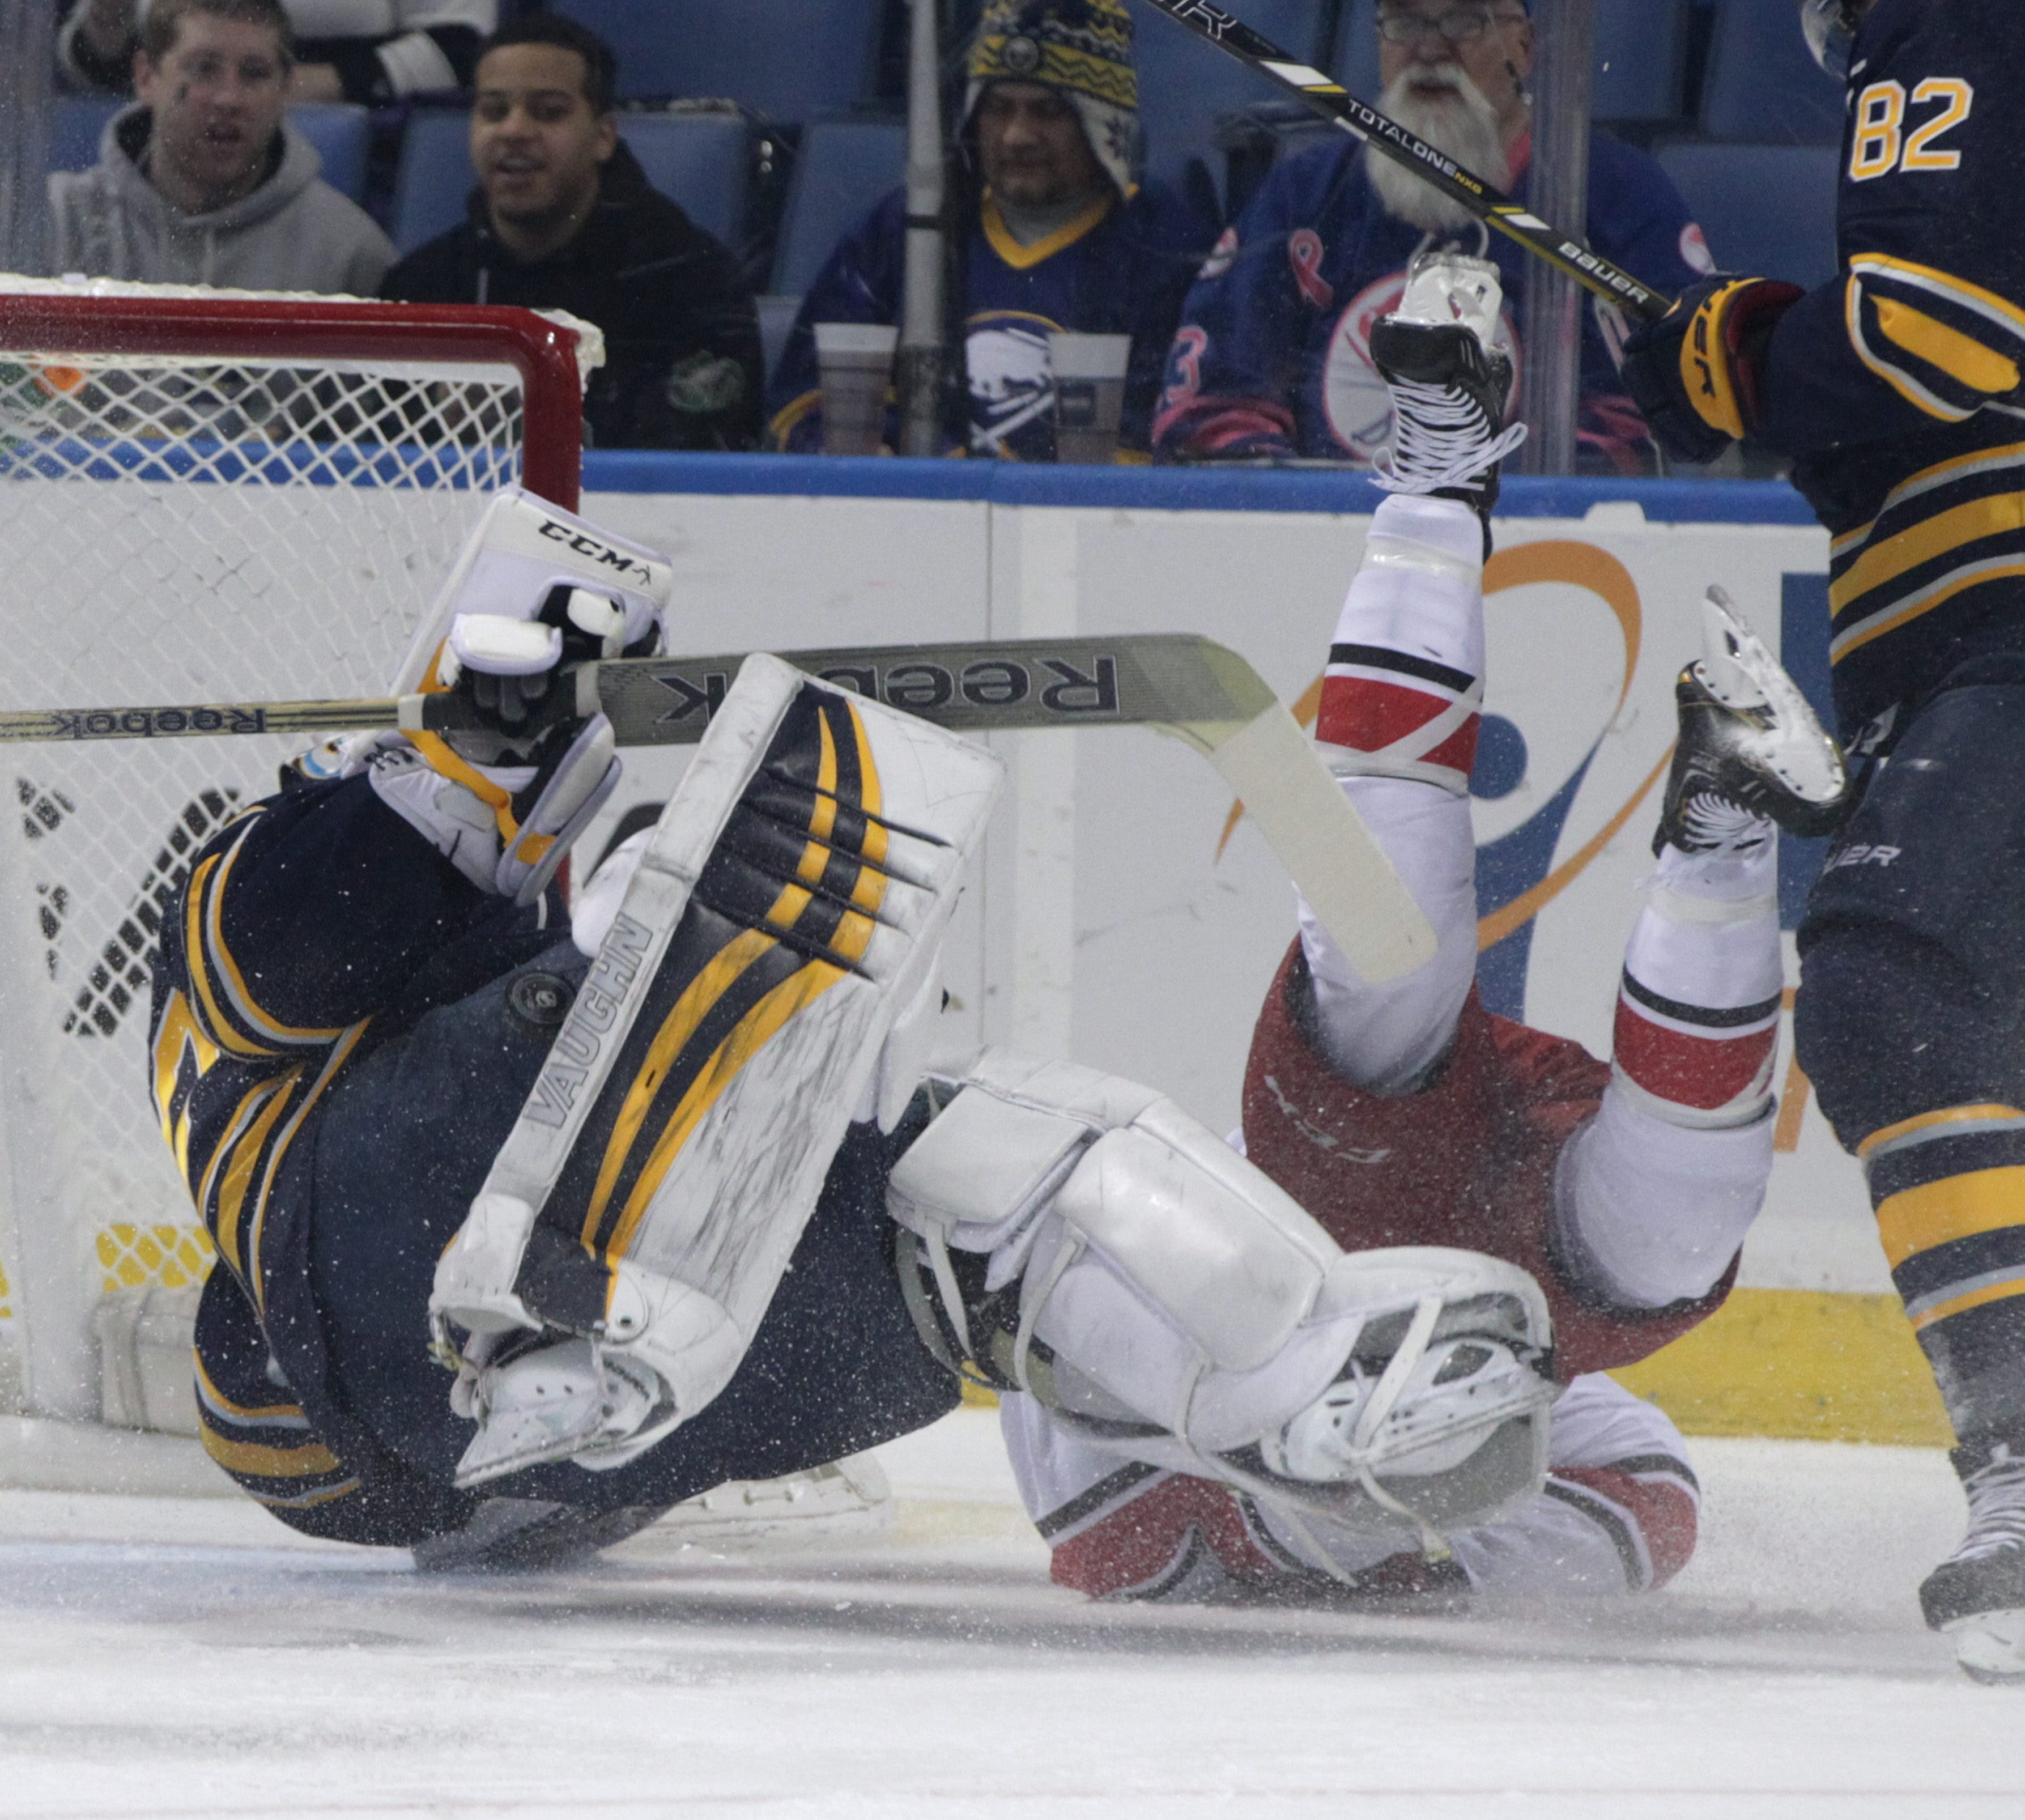 It's off their feet for Buffalo Sabres goalie Ryan Miller and Carolina Hurricanes center Riley Nash during the first period.